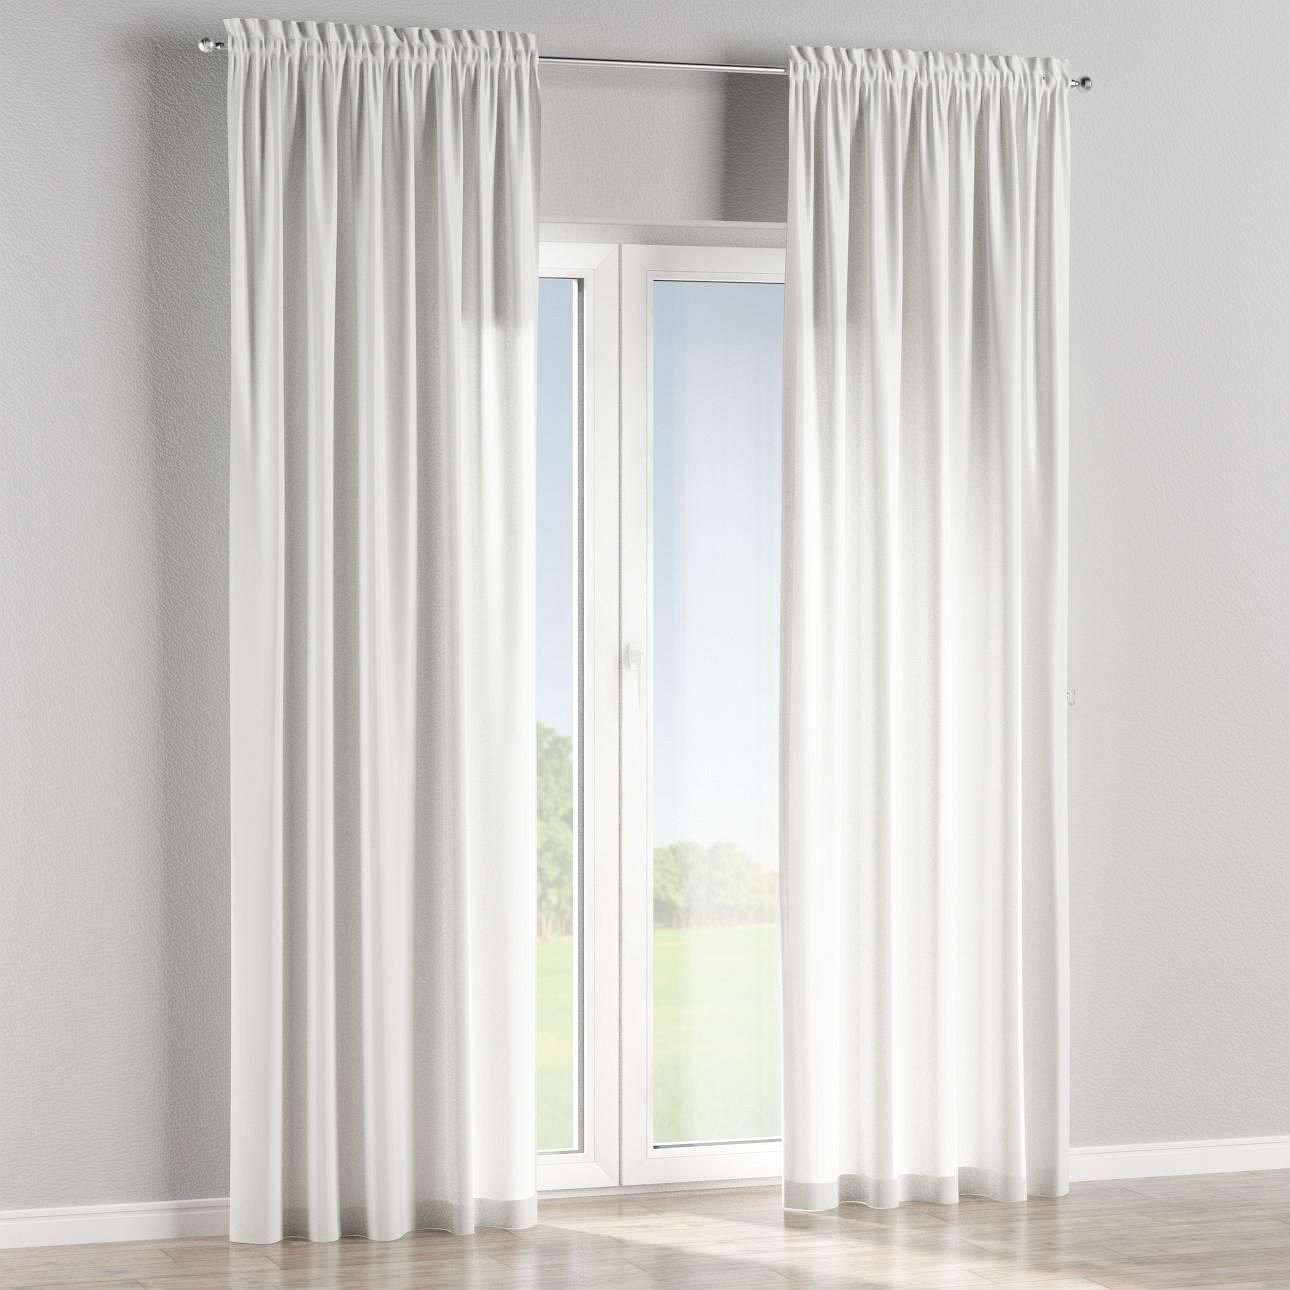 Slot and frill curtains in collection Cardiff, fabric: 136-24